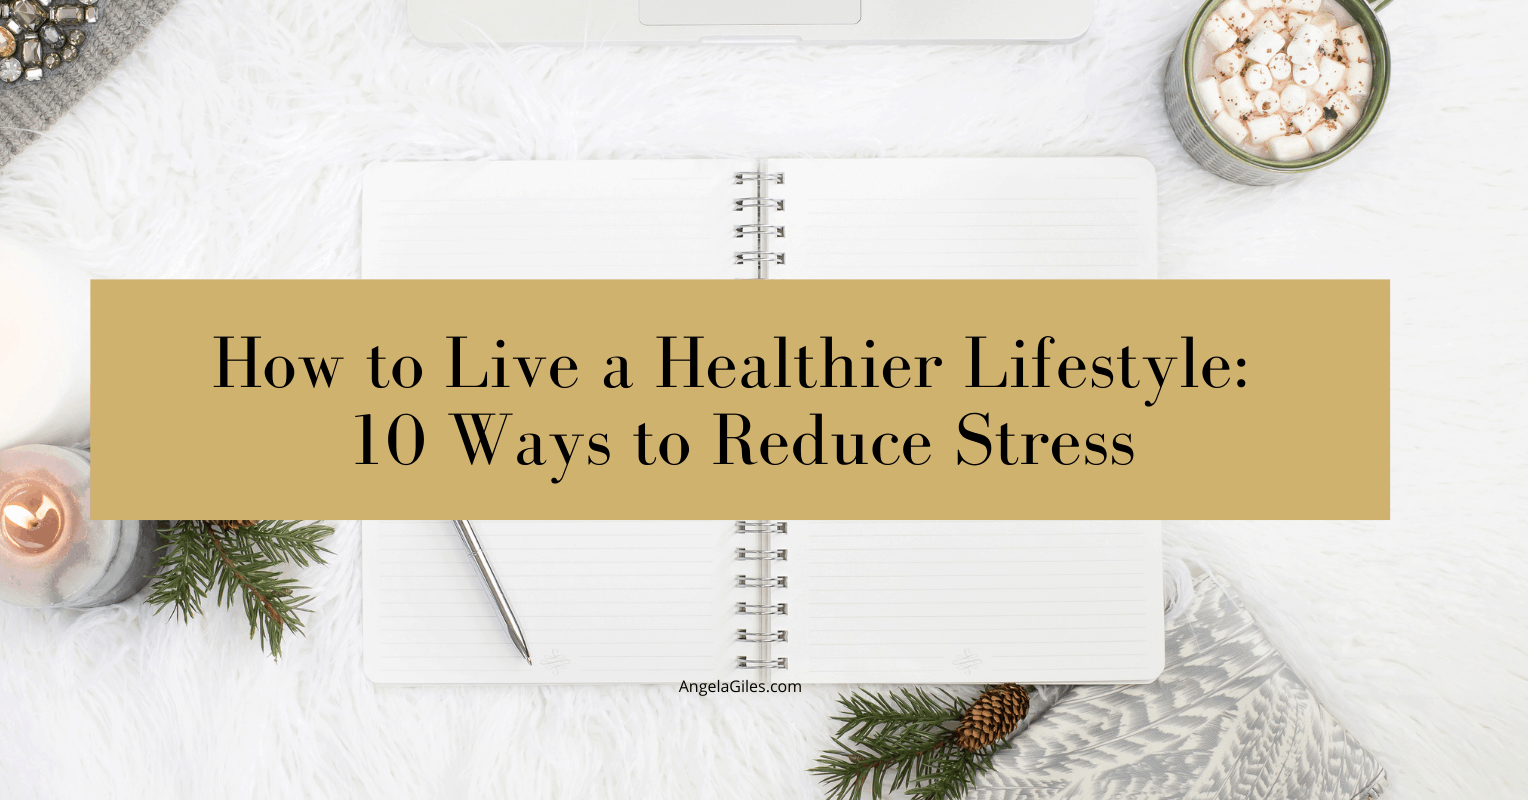 How to Live a Healthier Lifestyle: 10 Ways to Reduce Stress